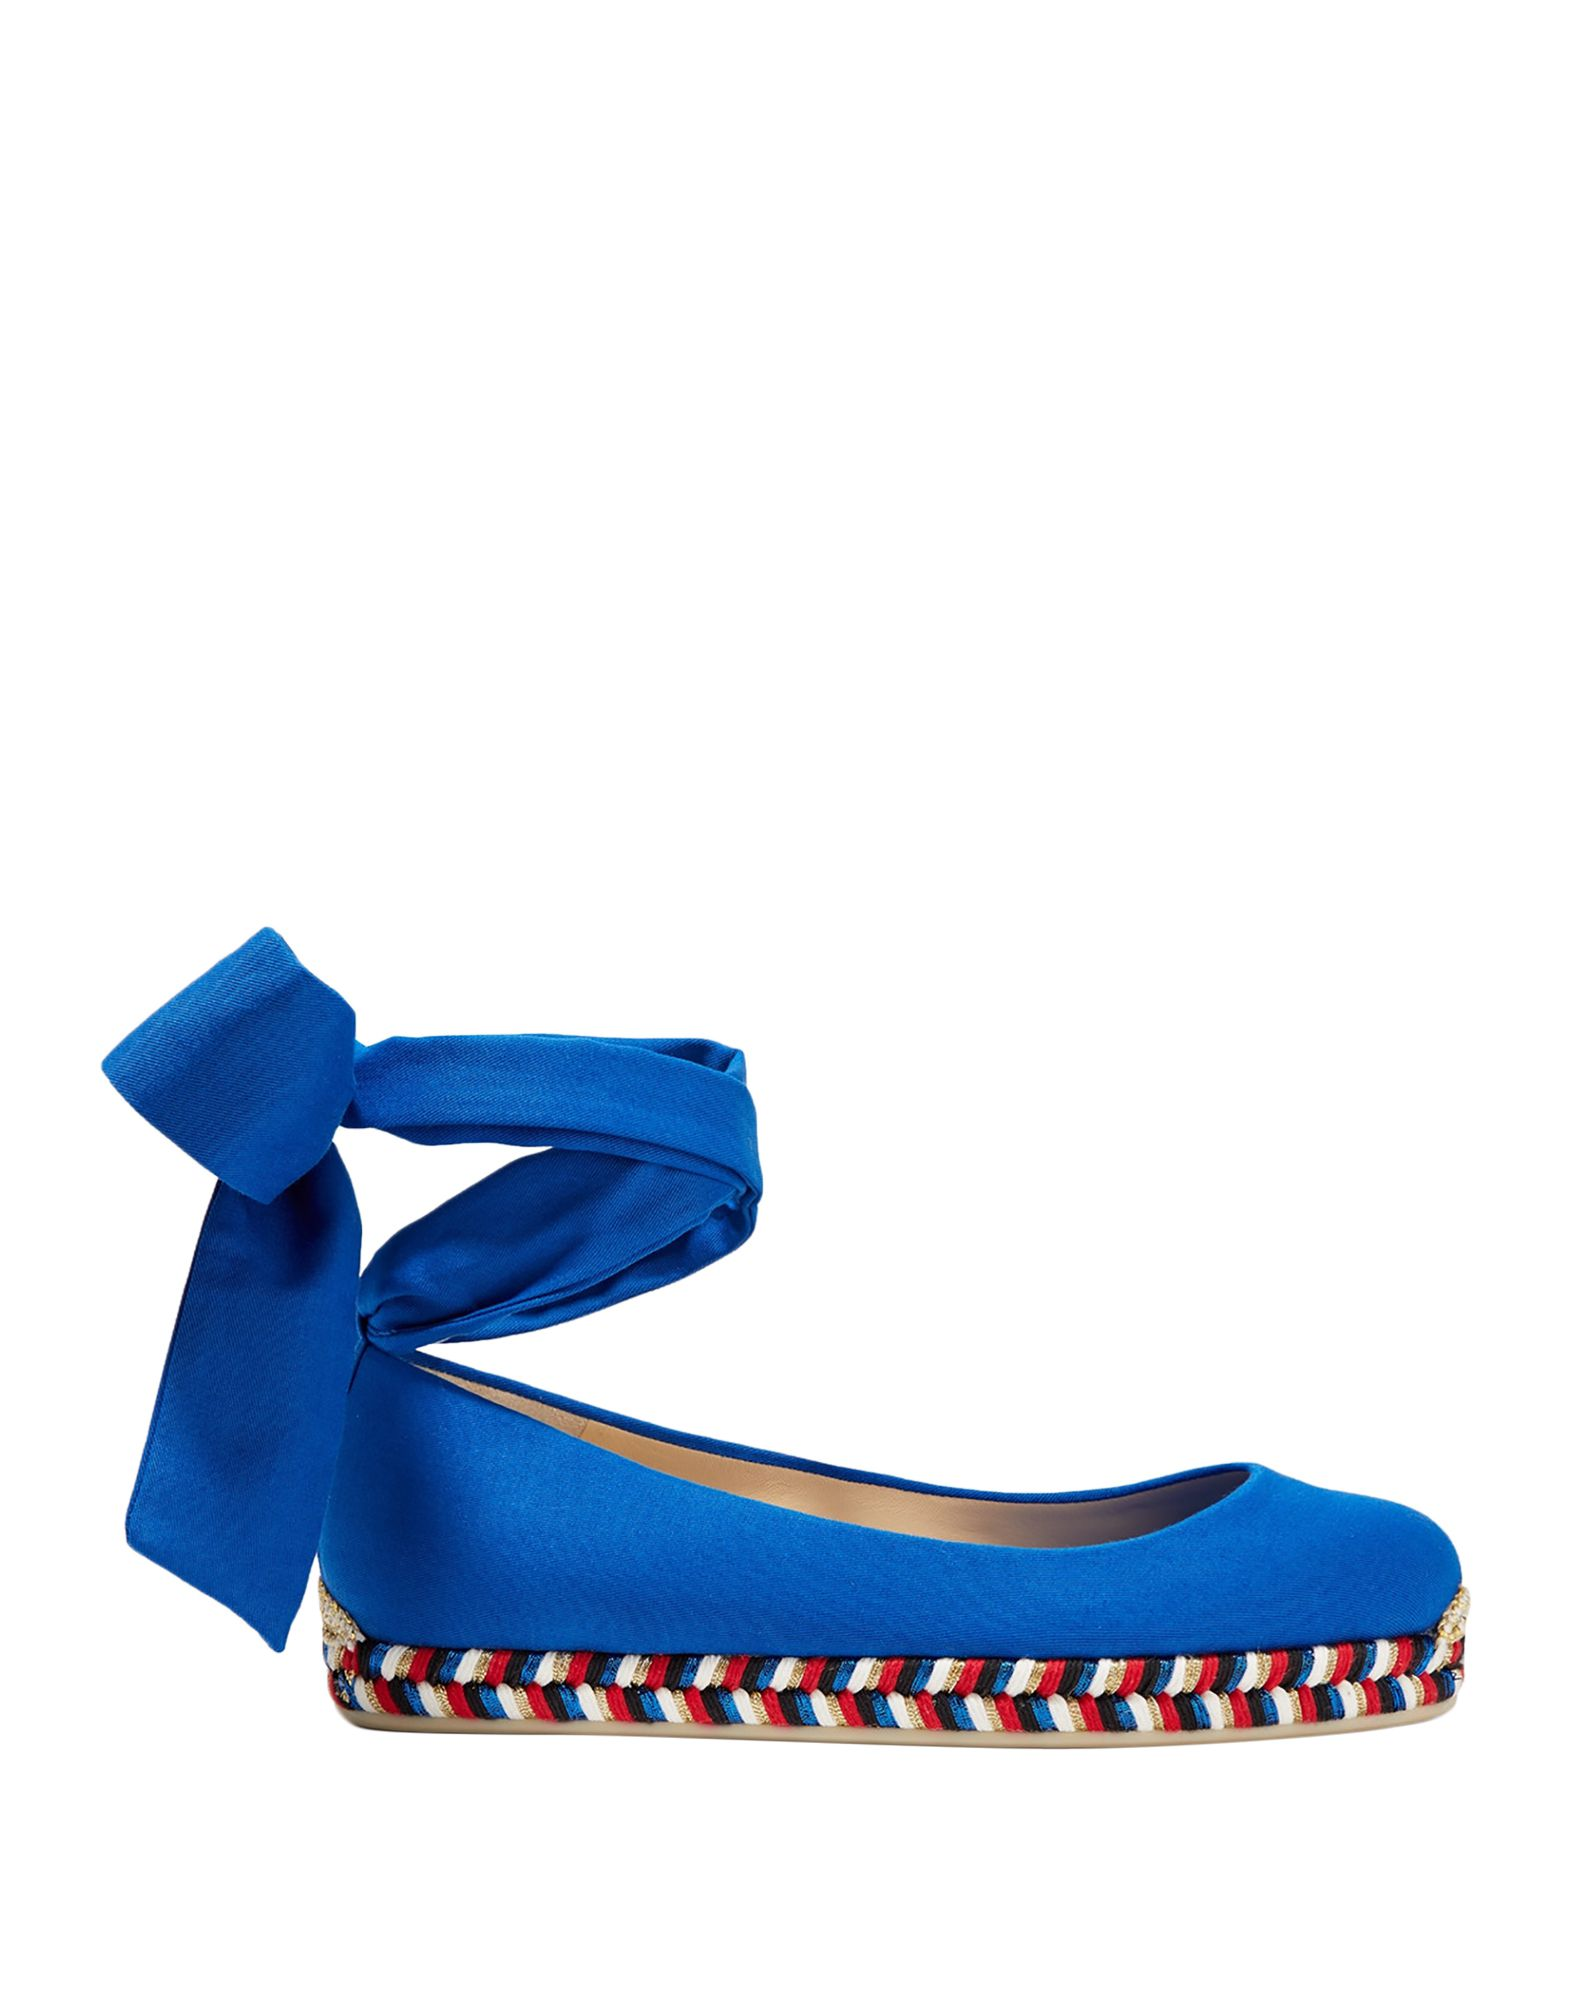 CHRISTIAN LOUBOUTIN Ballet flats. plain weave, laces, solid color, wrapping straps closure, round toeline, flat, leather lining, rubber cleated sole, contains non-textile parts of animal origin, small sized. Textile fibers